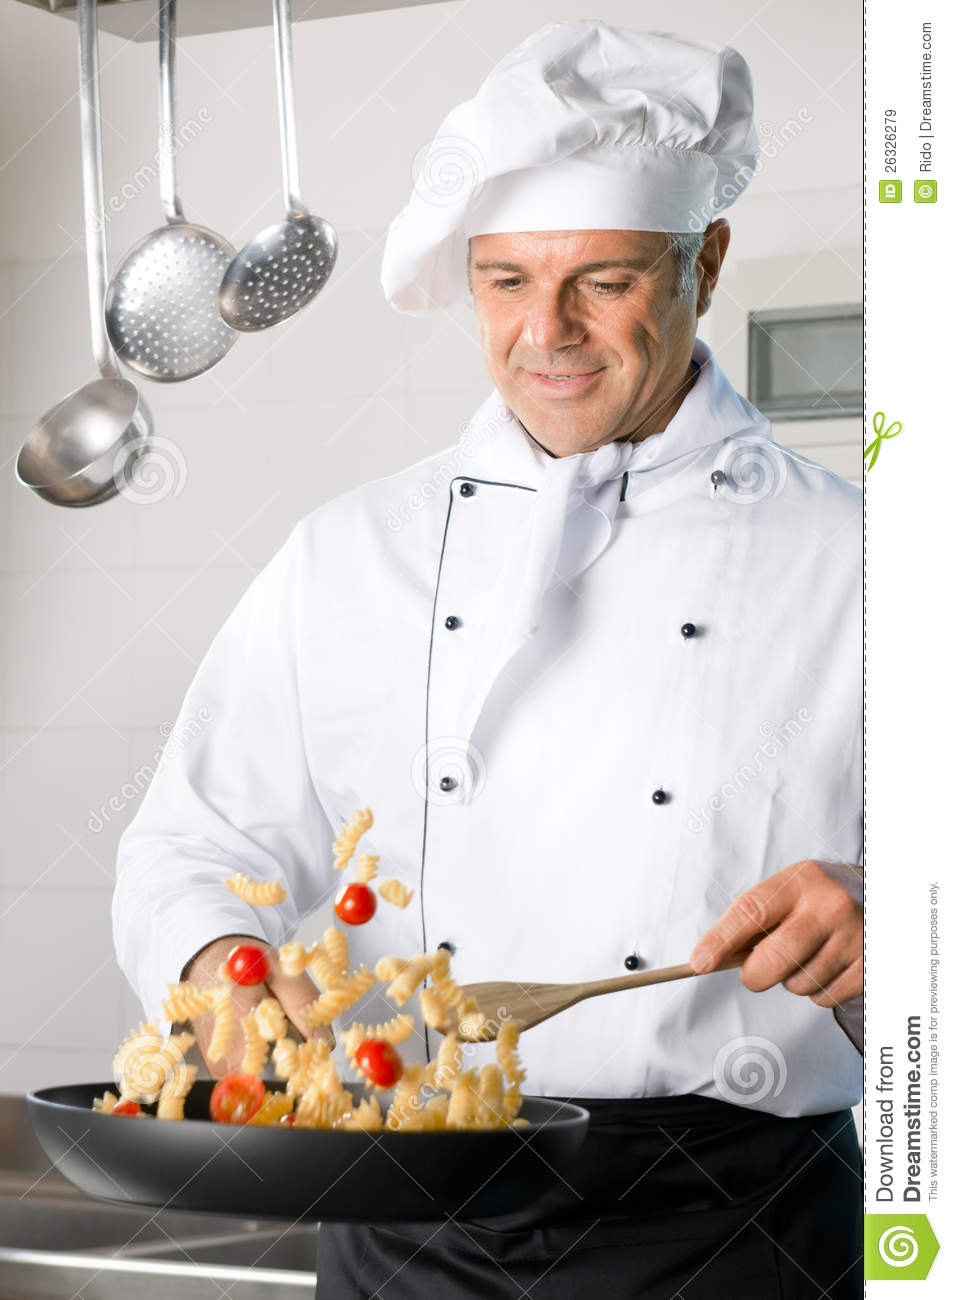 Chef cooking pasta stock image Image of person hotel